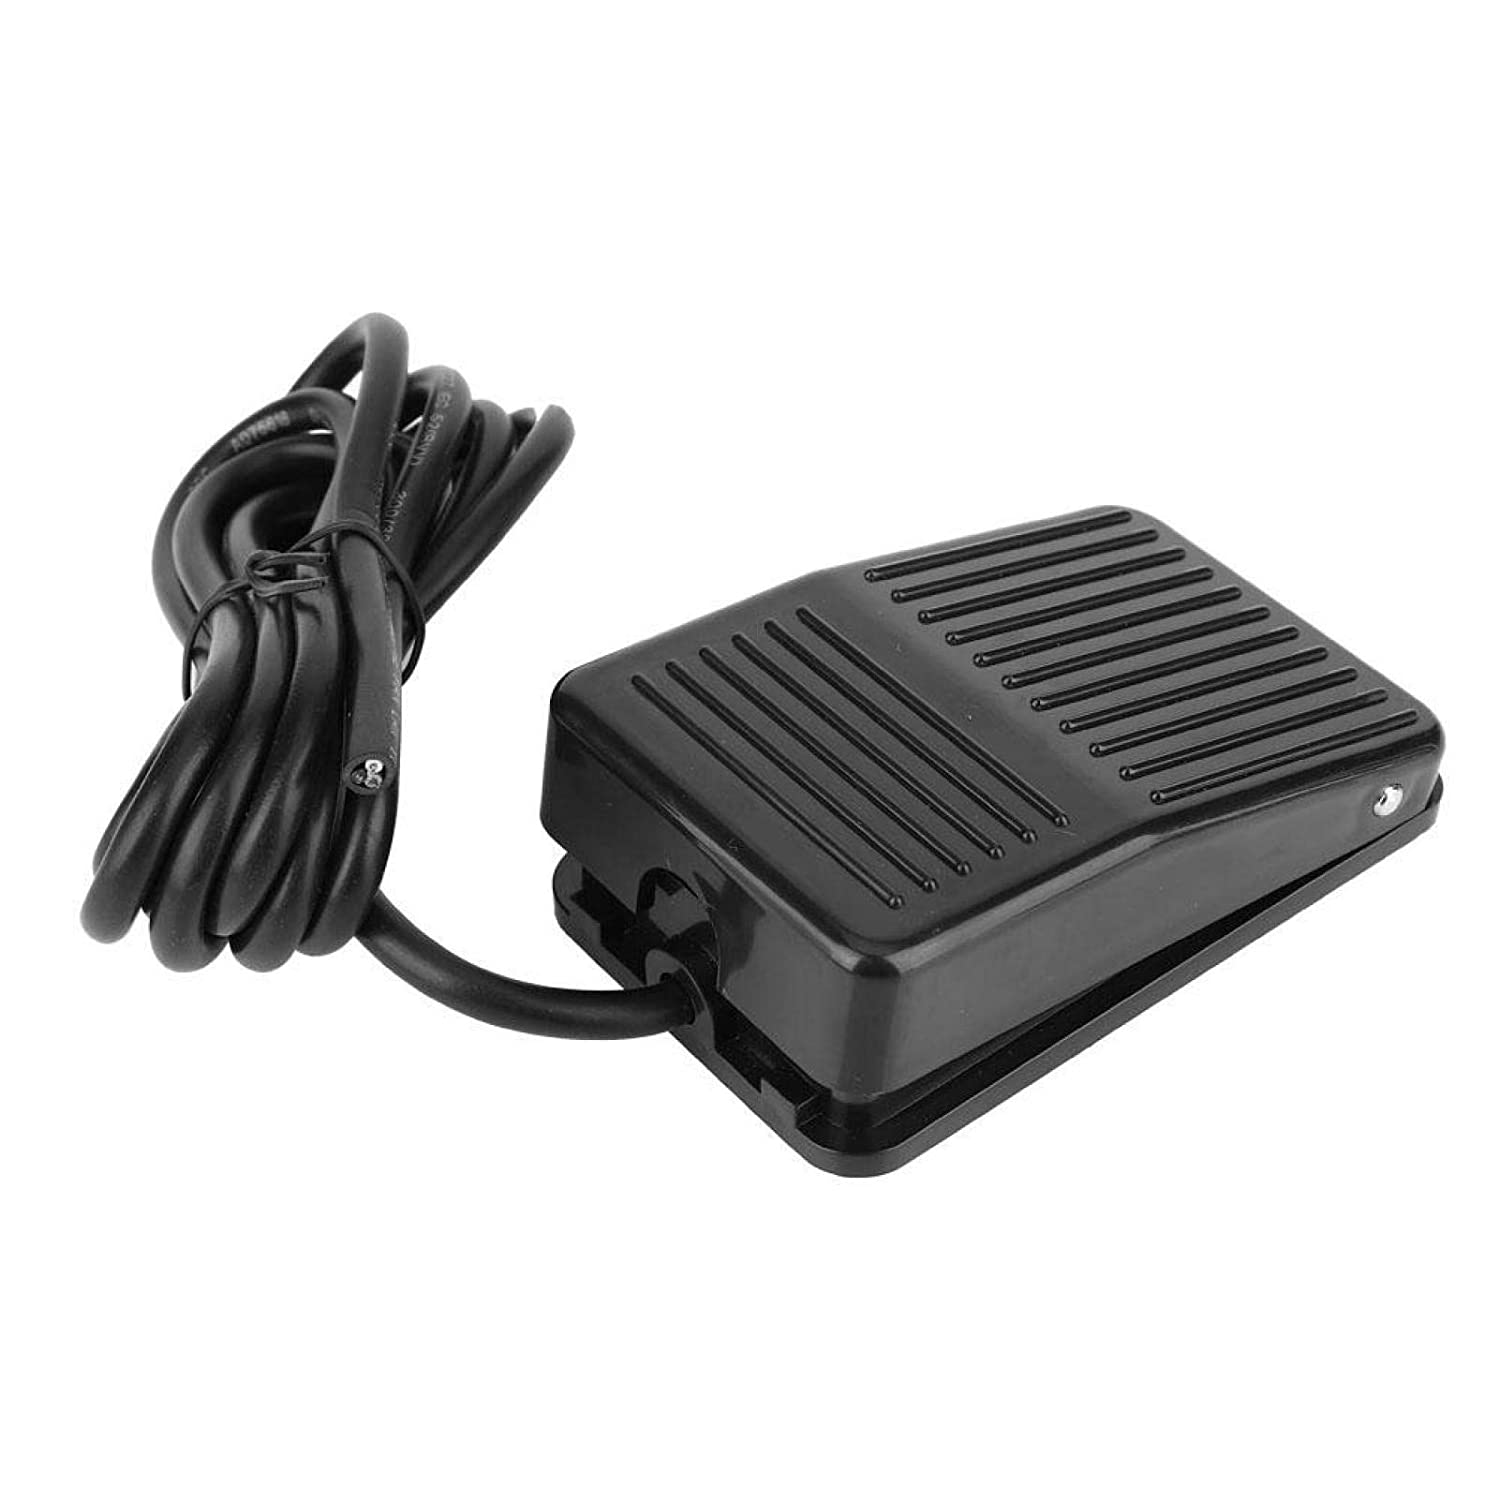 New Max 70% OFF product type Foot Controller Switch Pedal for TFS-01 Control